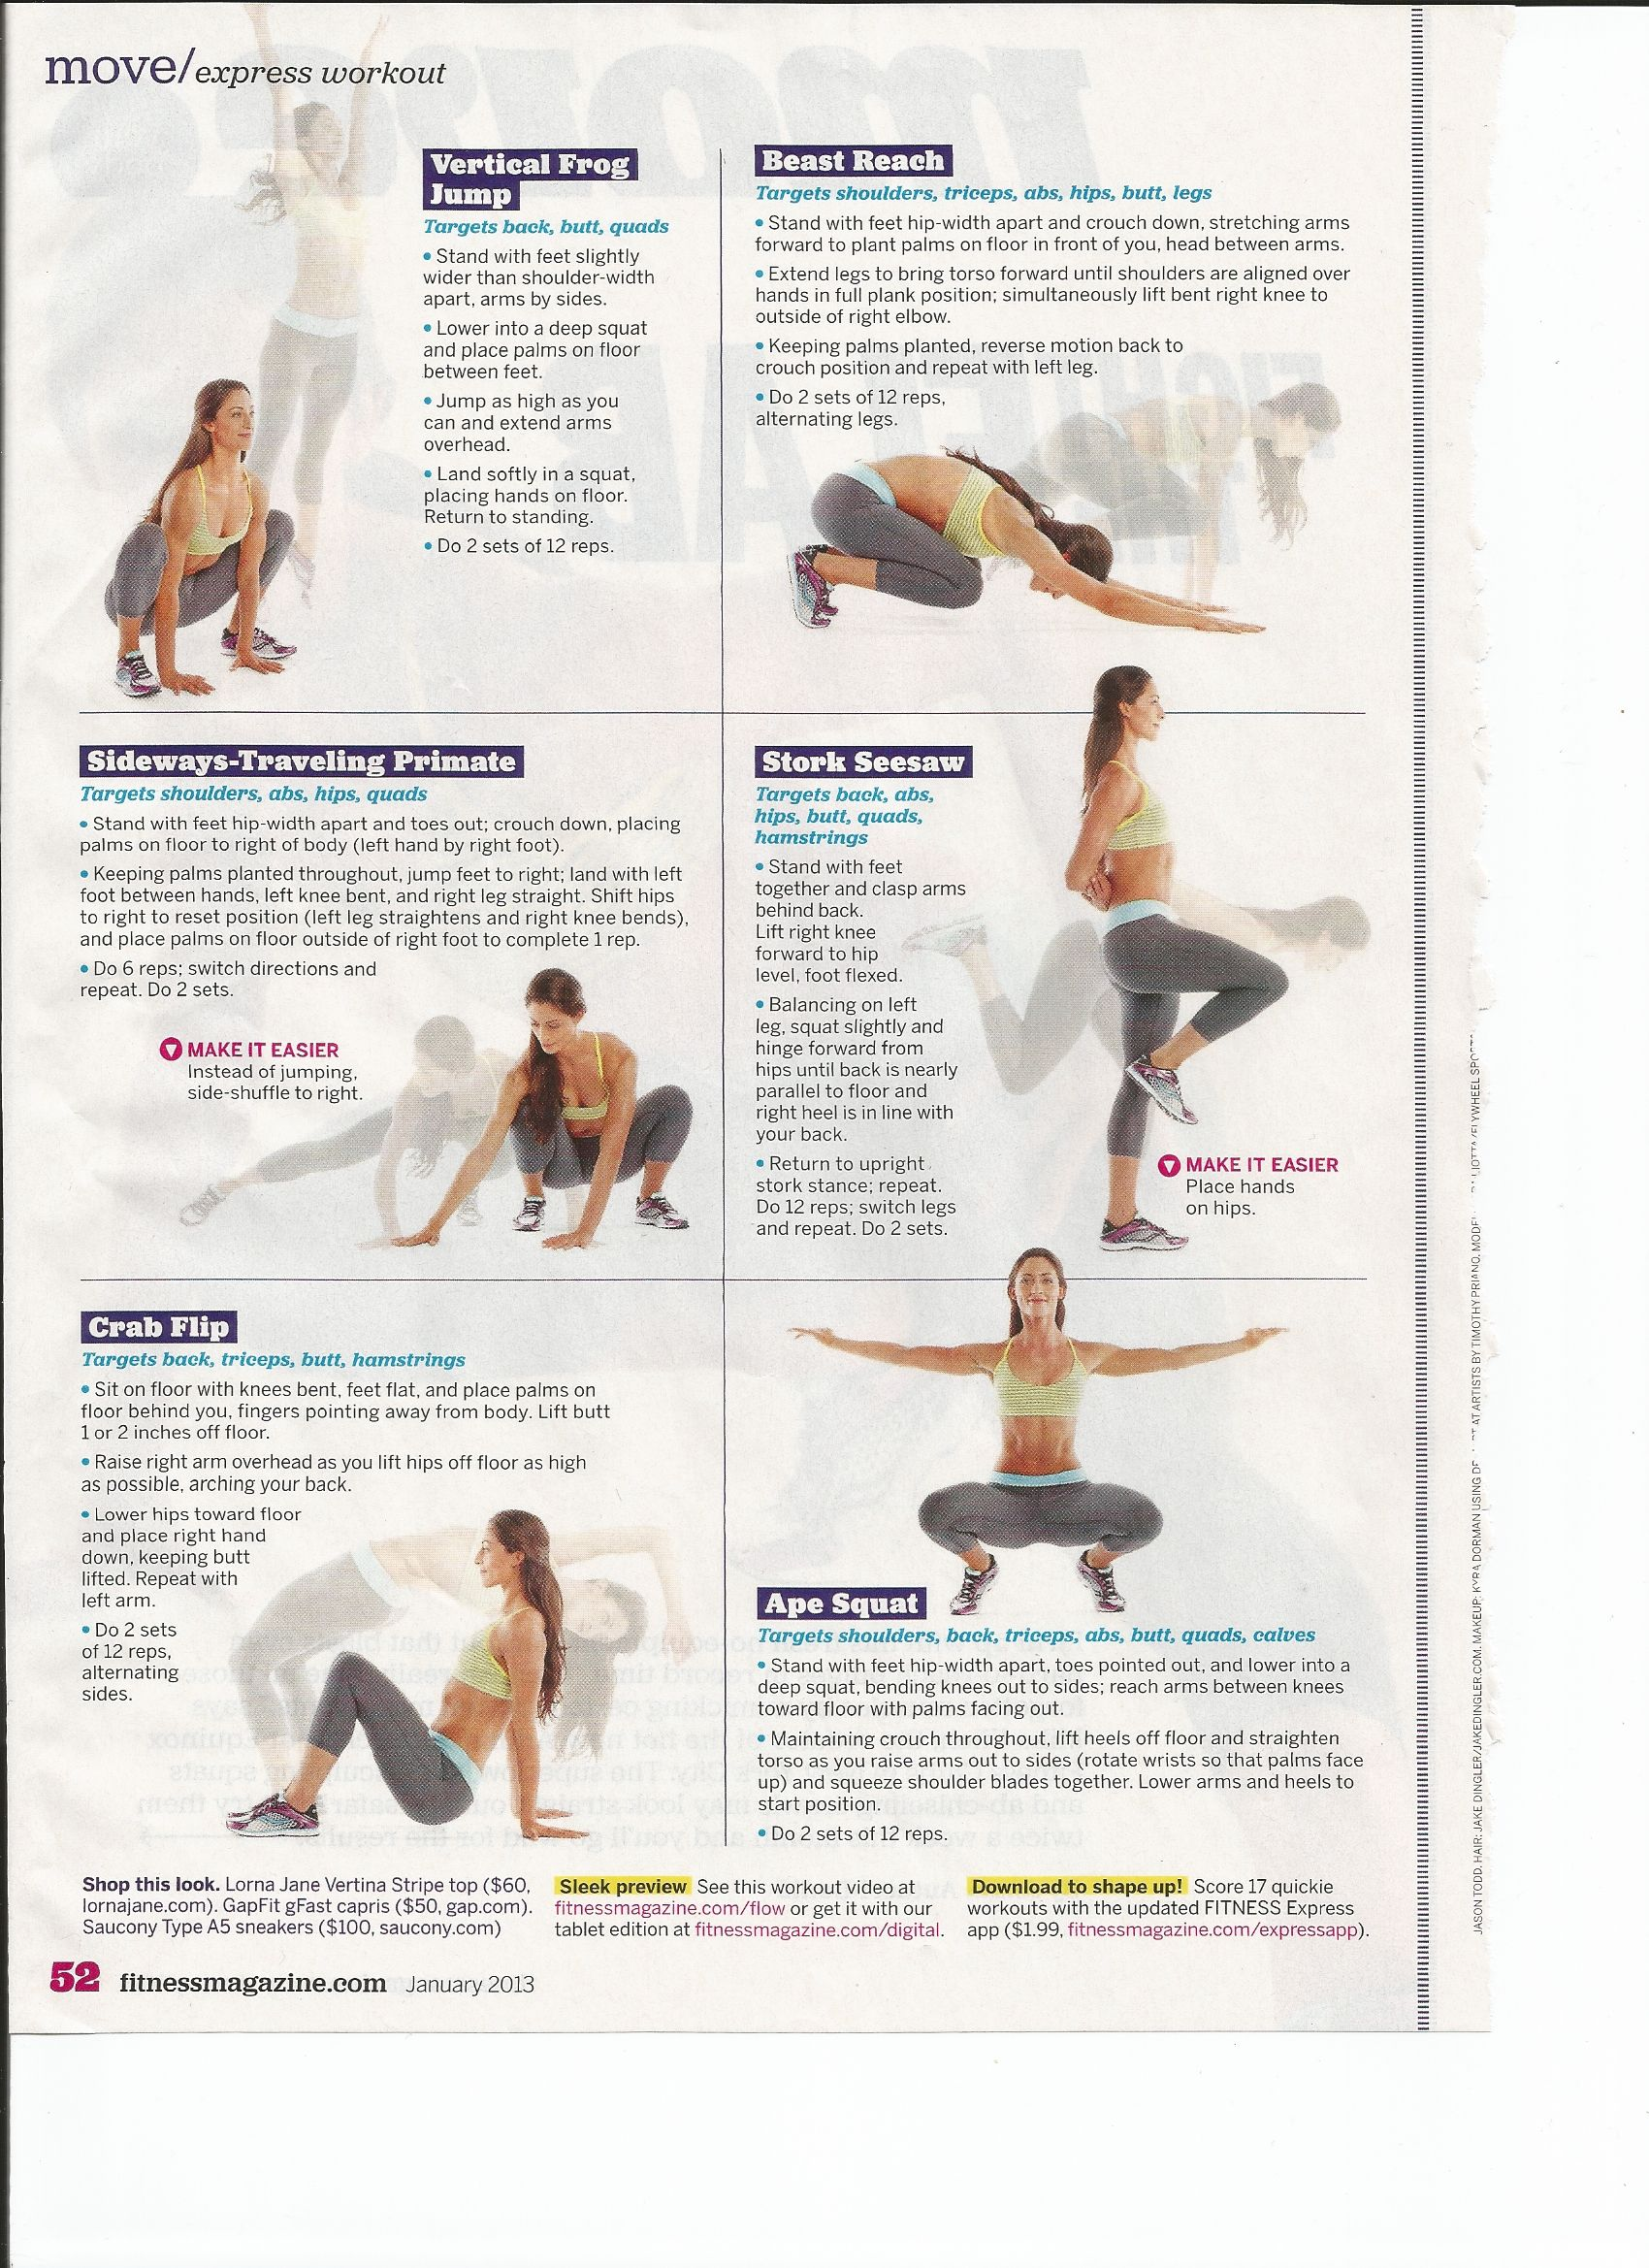 Express workout, great cardio workout! Get yourself in the